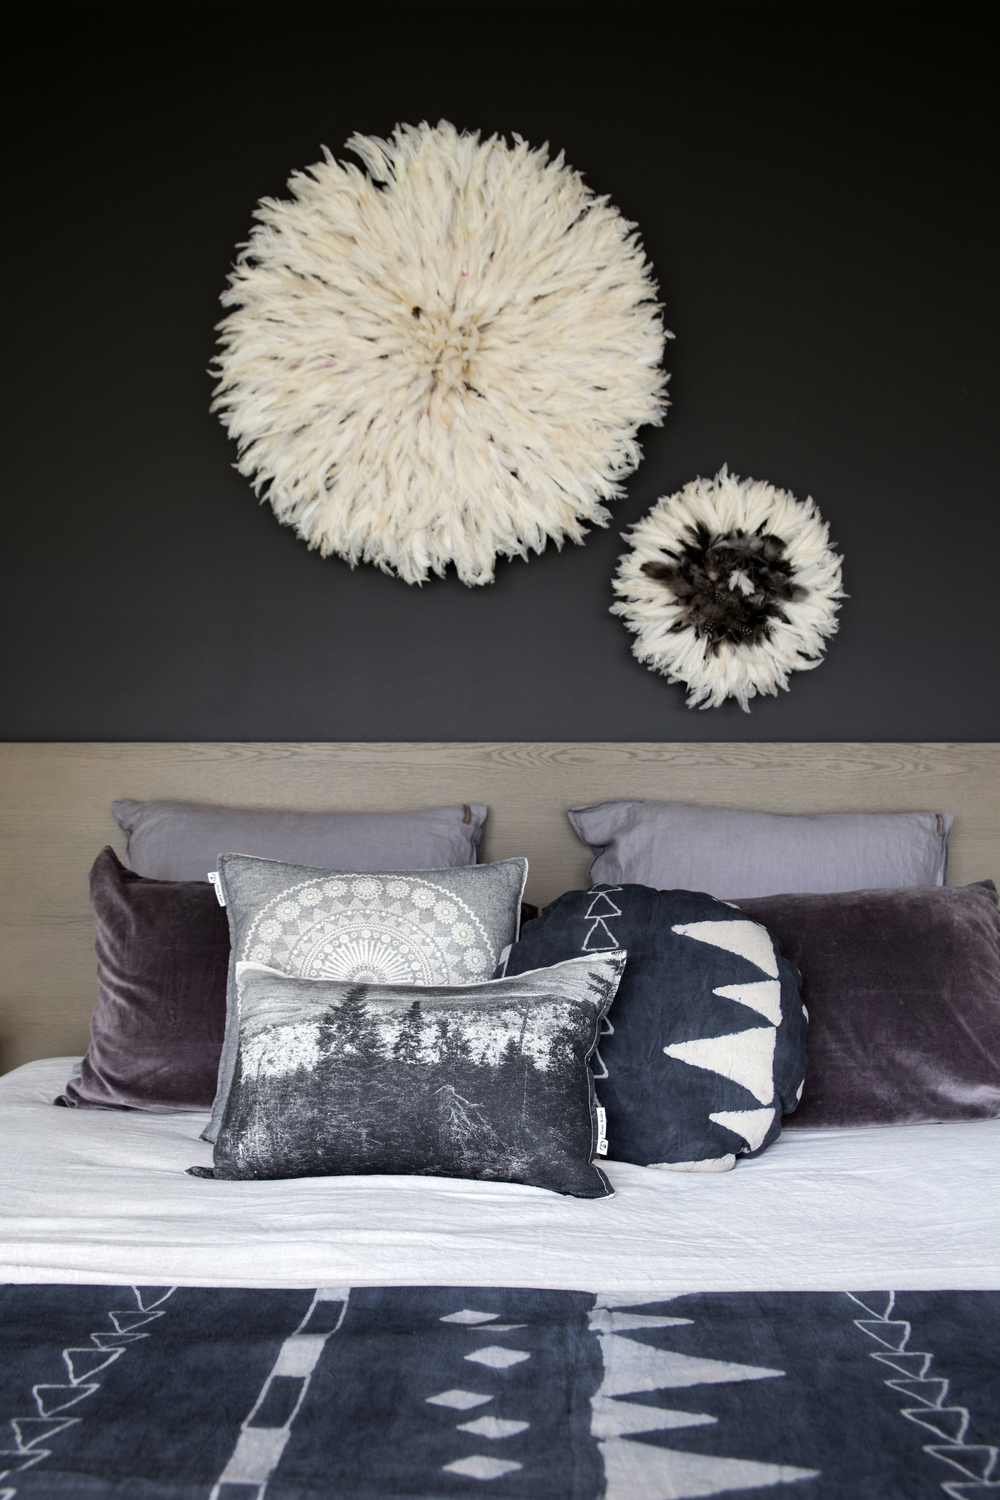 Detail Collective | Interior Spaces | Back to Black in the Bedroom | Project: Detail Collective | Image: Lisa Atkinson